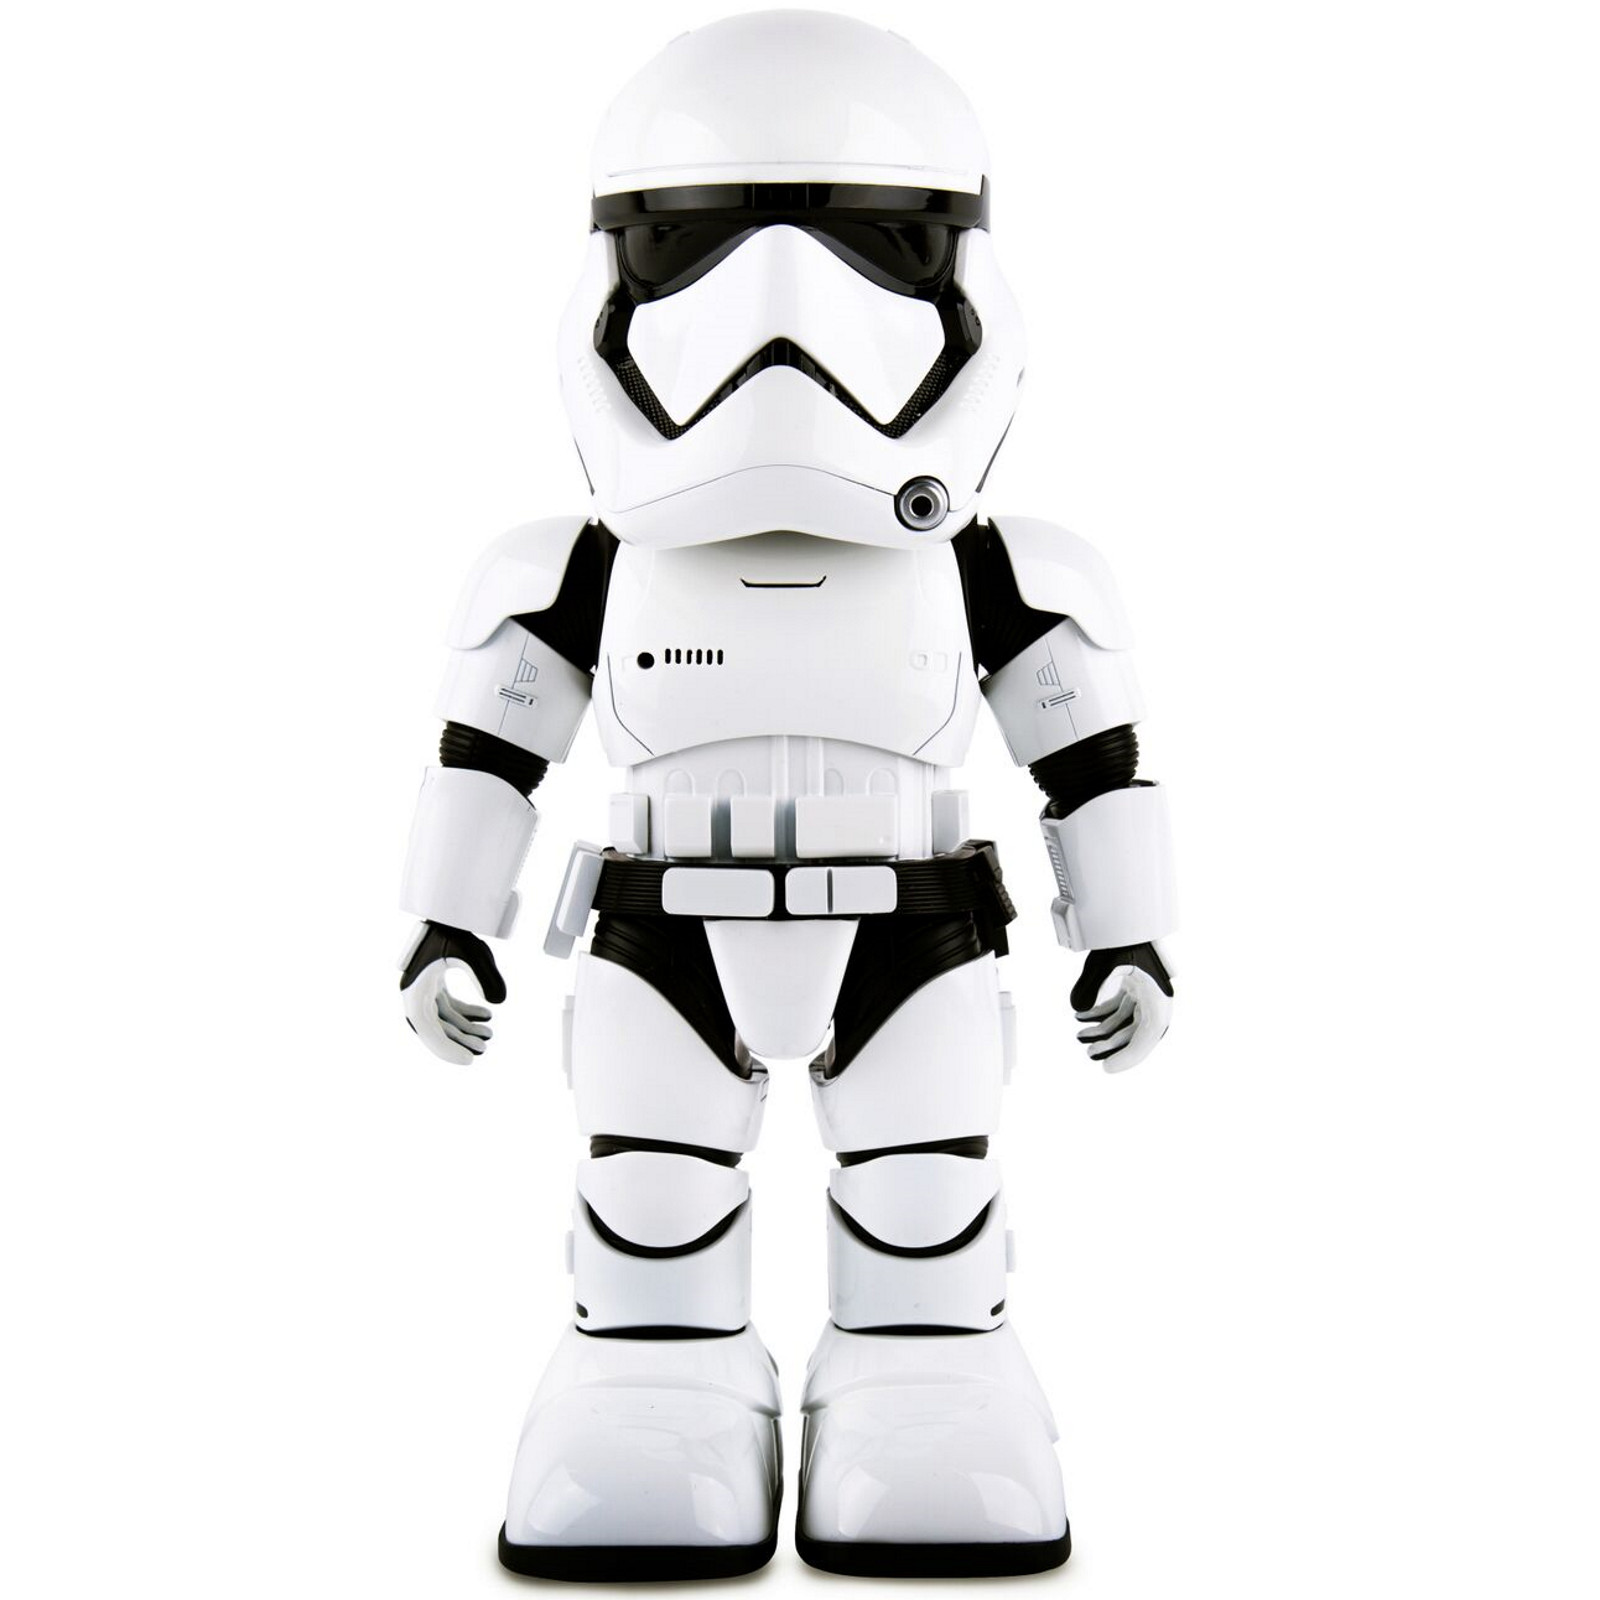 Buy the UBTECH Star Wars Stormtrooper Robot App-Controlled, Voice ...